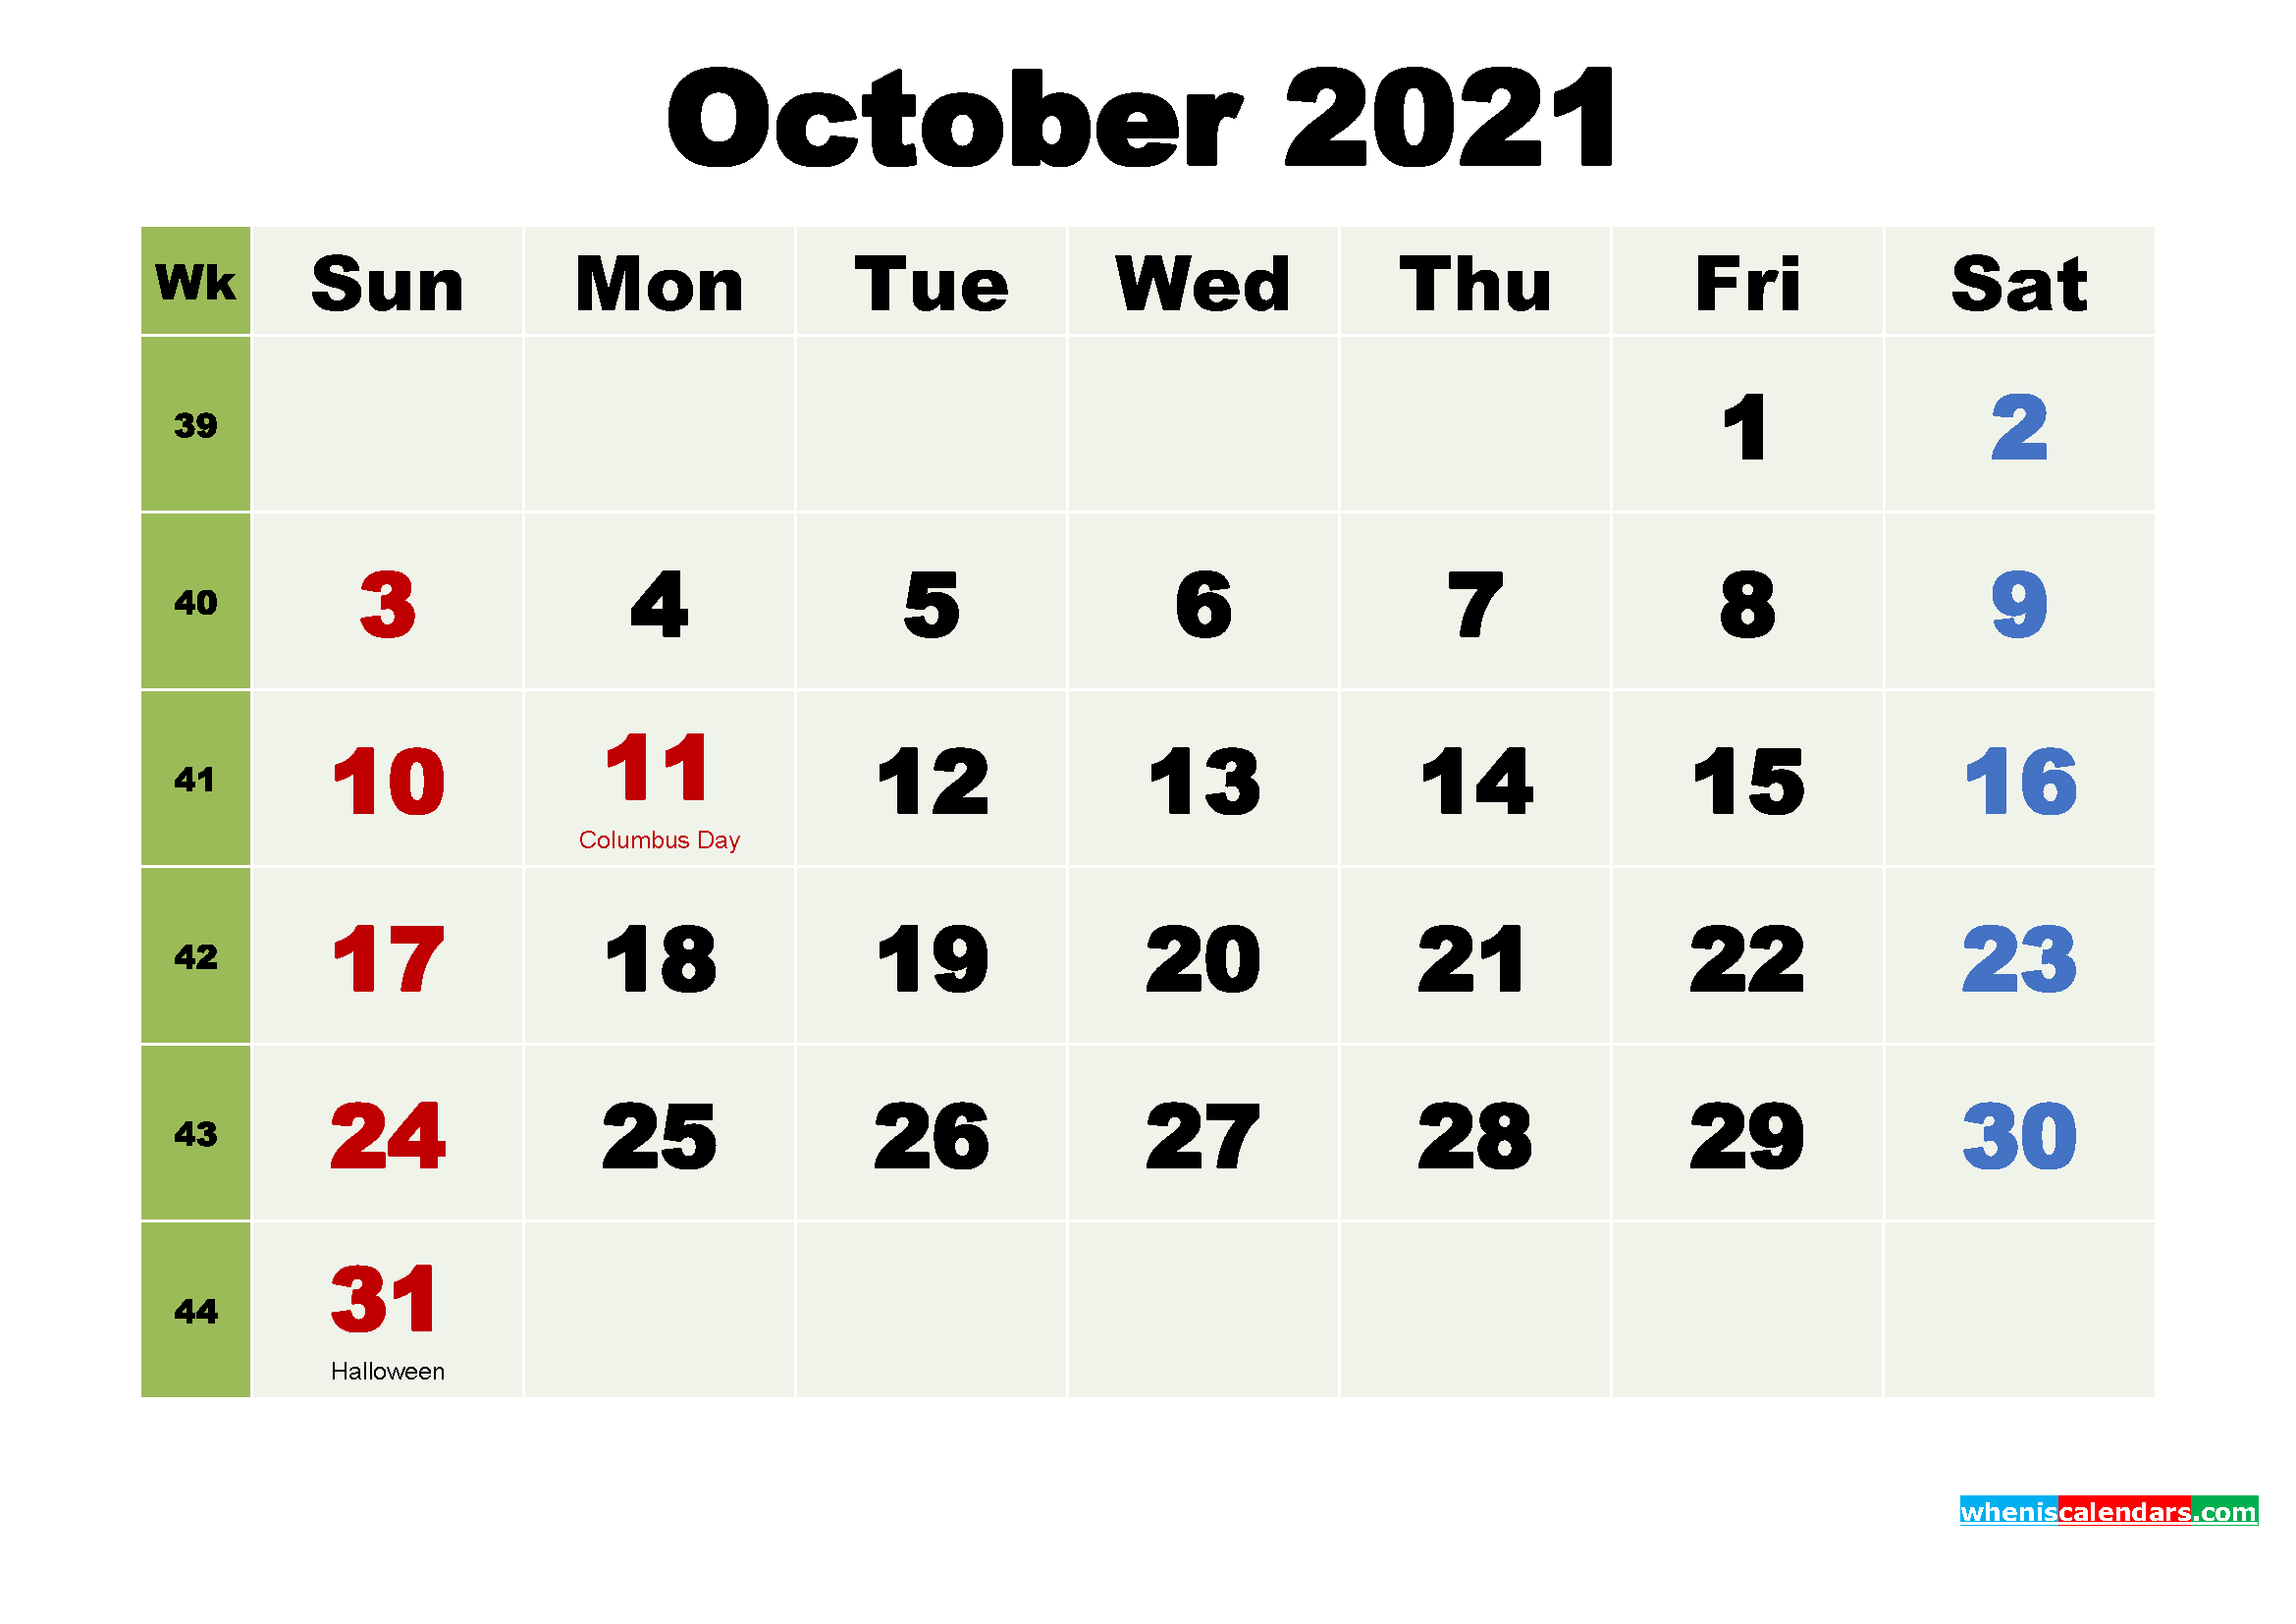 Printable October 2021 Calendar by Month